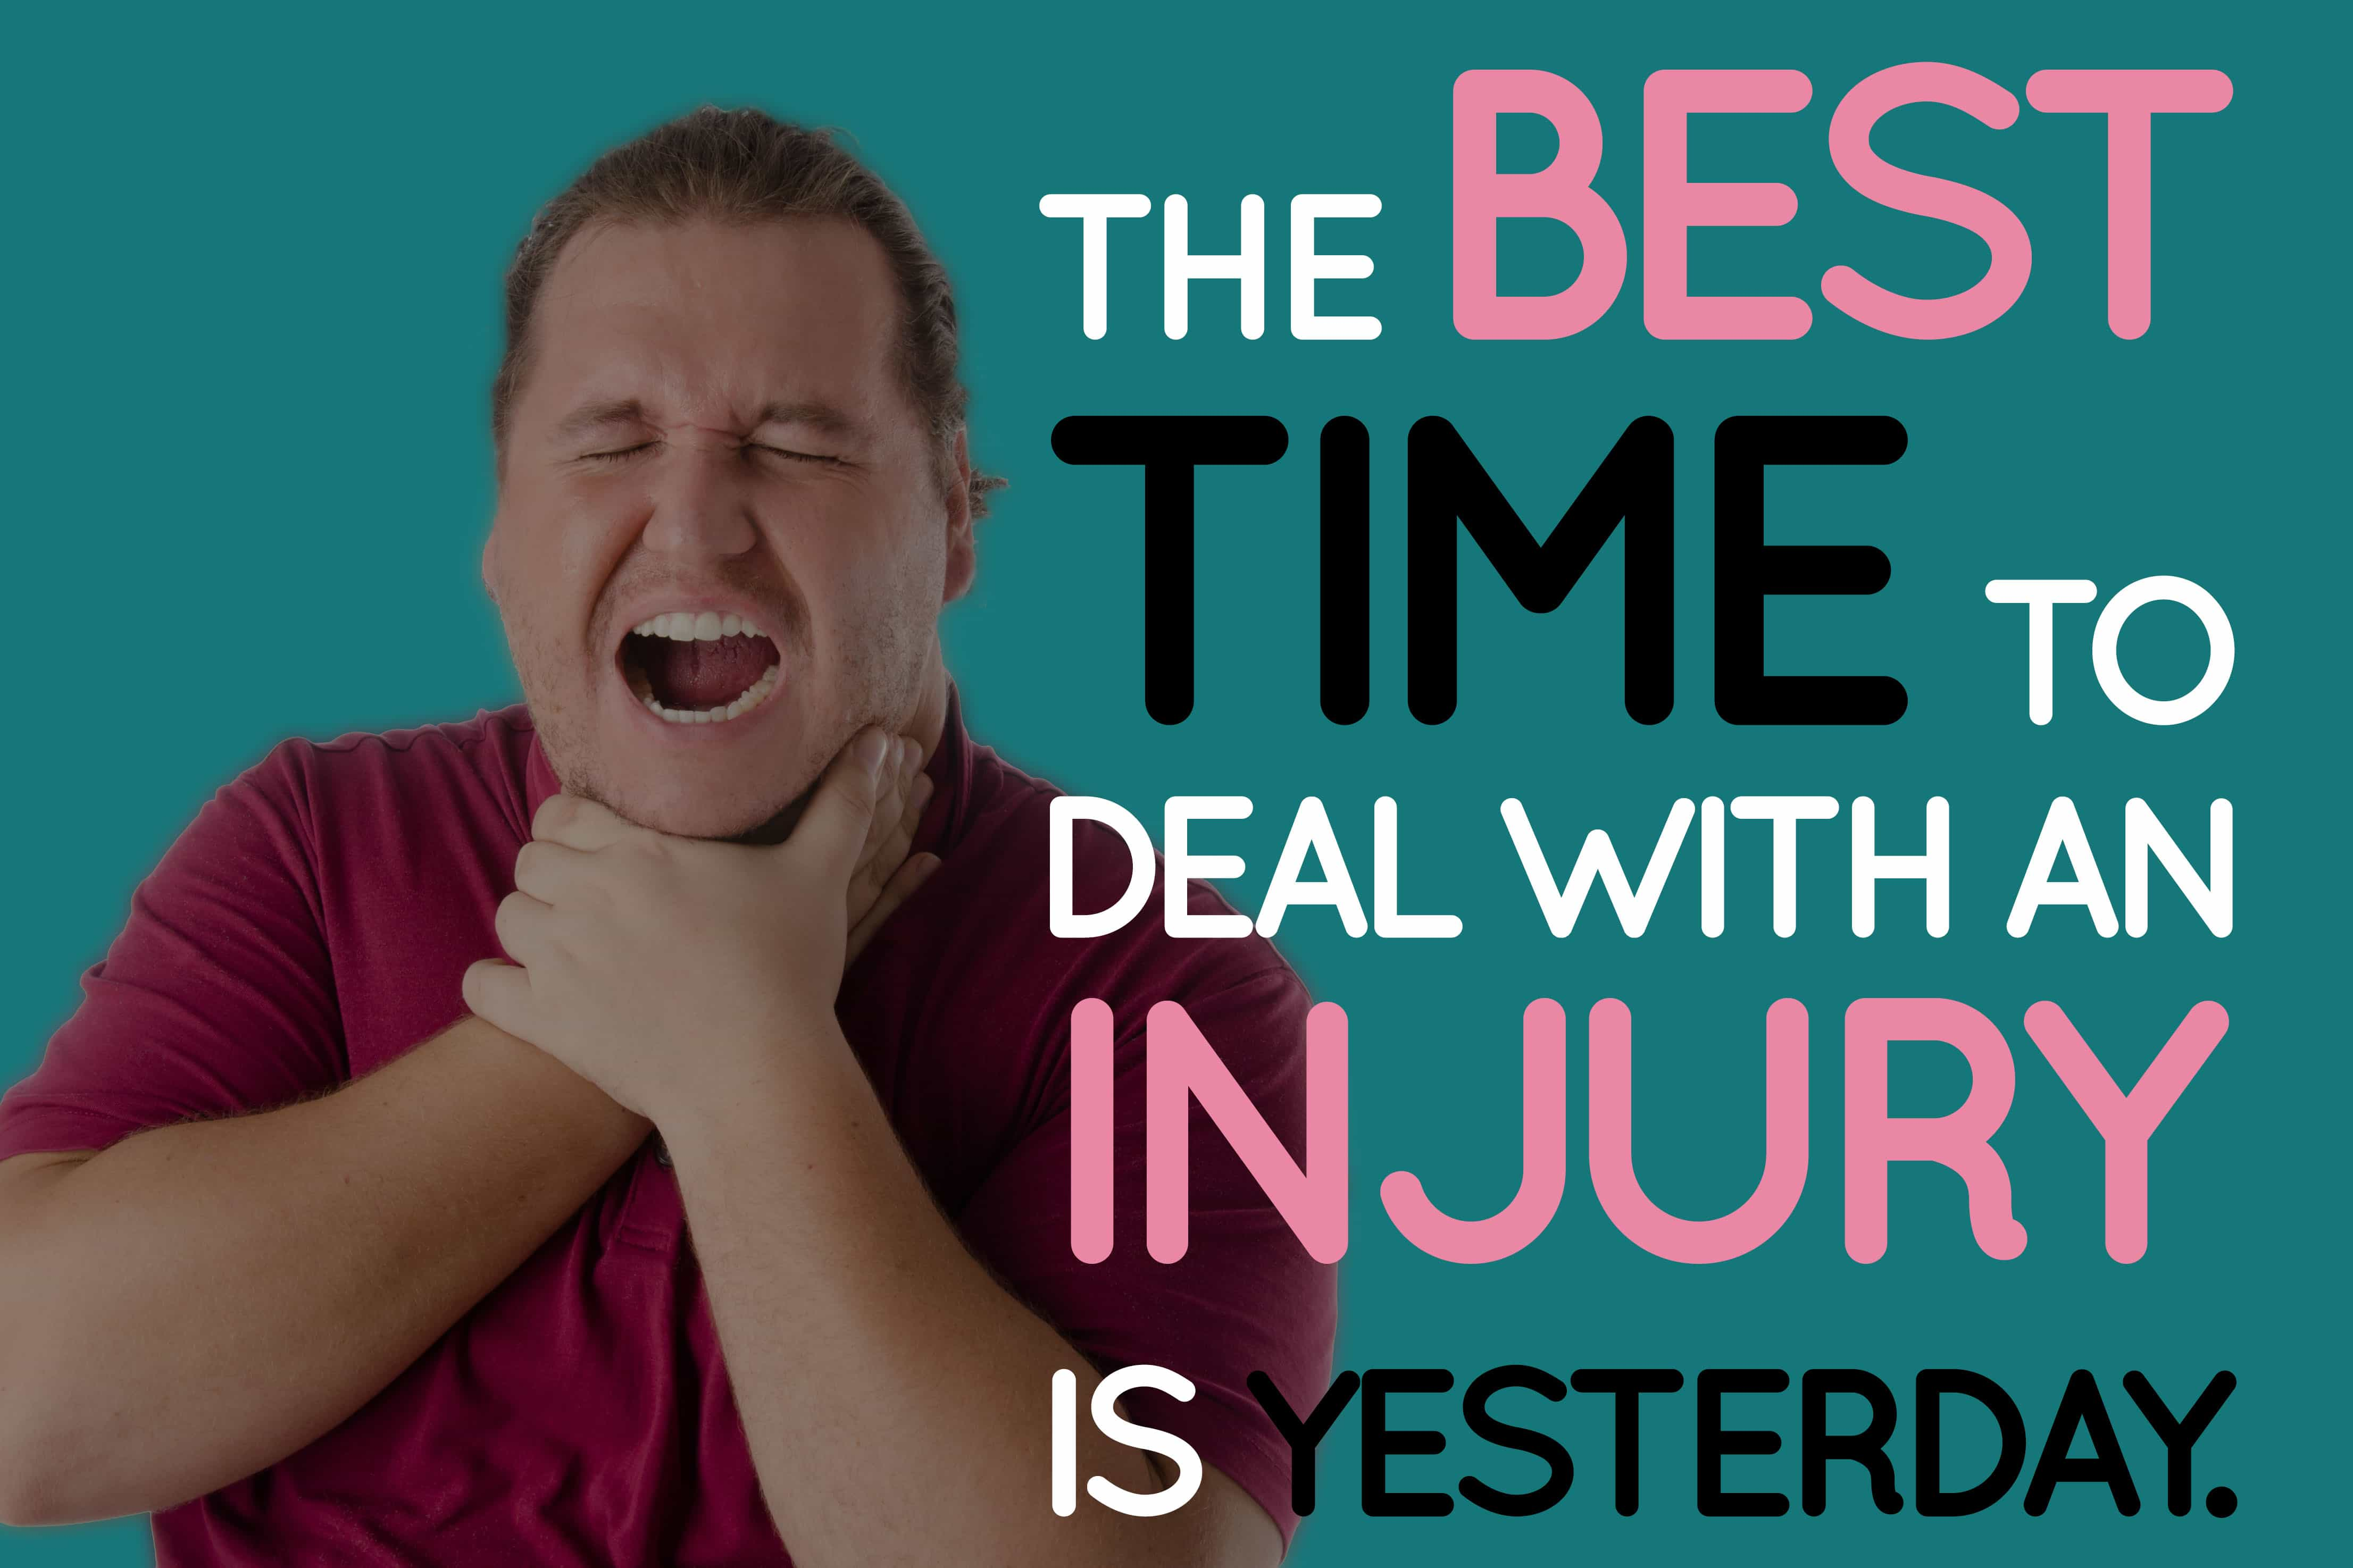 The Best Time To Deal With A Vocal Injury Is Yesterday.